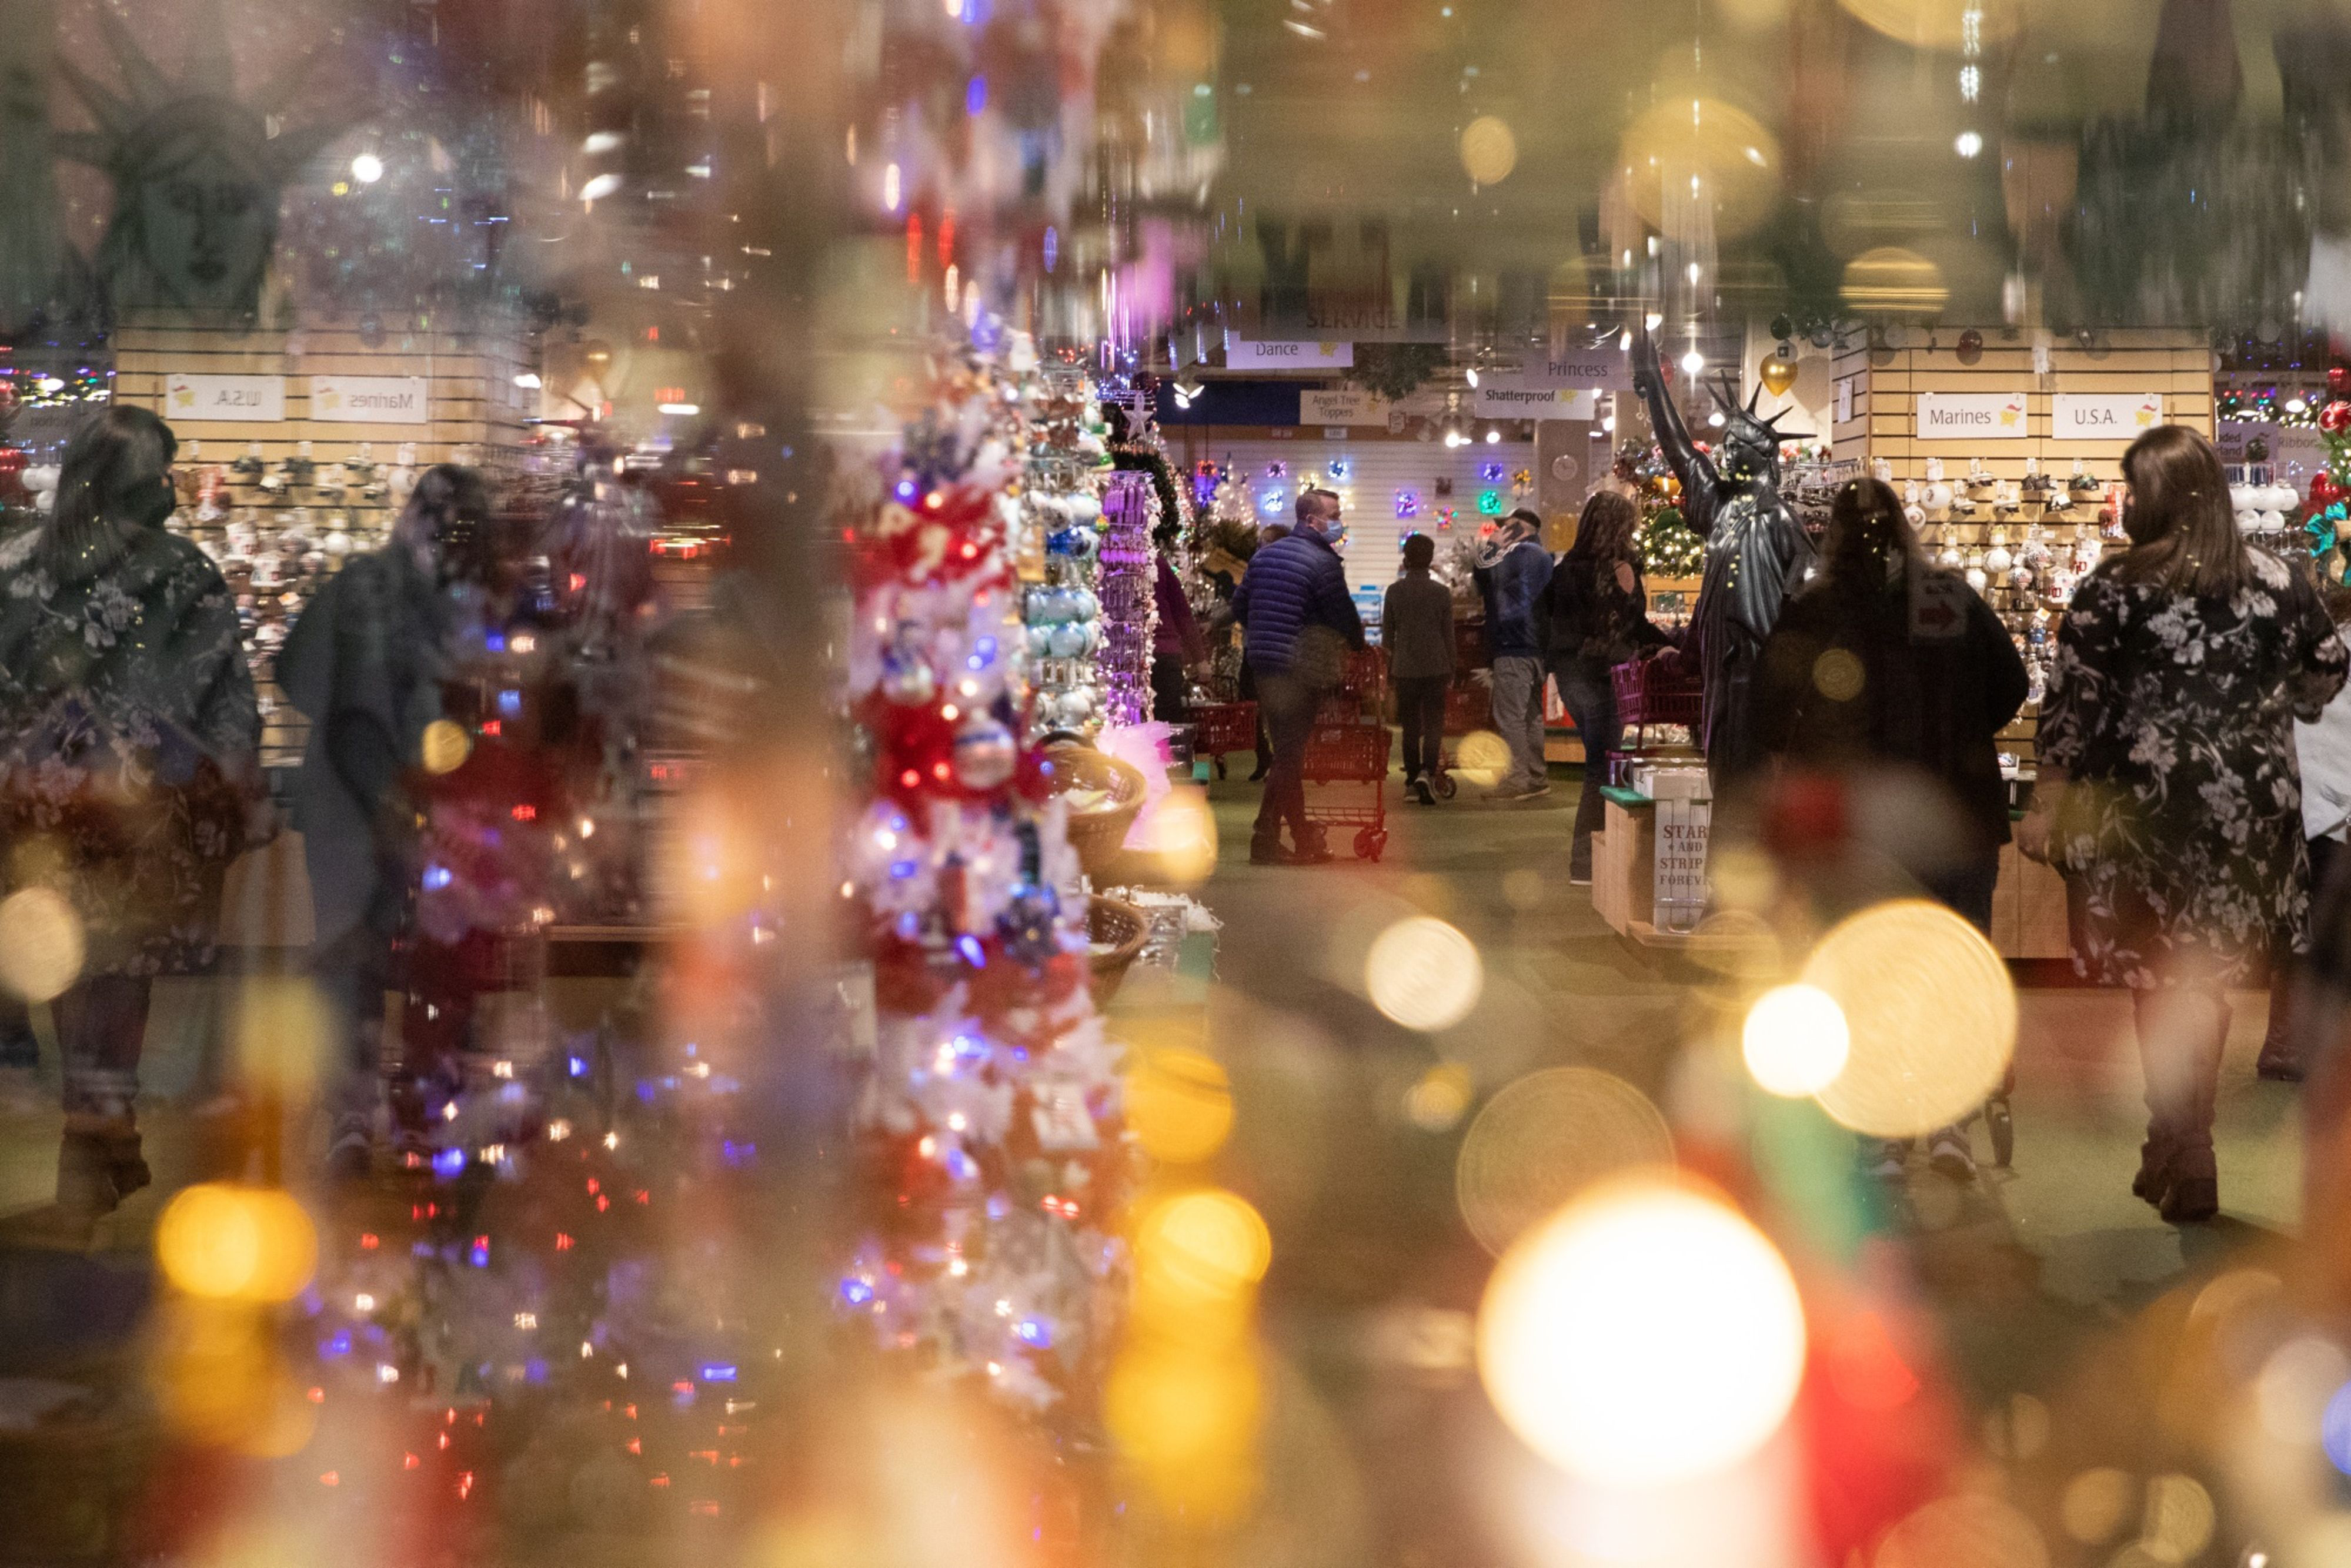 Customers wore protective masks as they shopped for holiday decorations at Bronner's Christmas Wonderland store in Frankenmuth, Mich., in December.